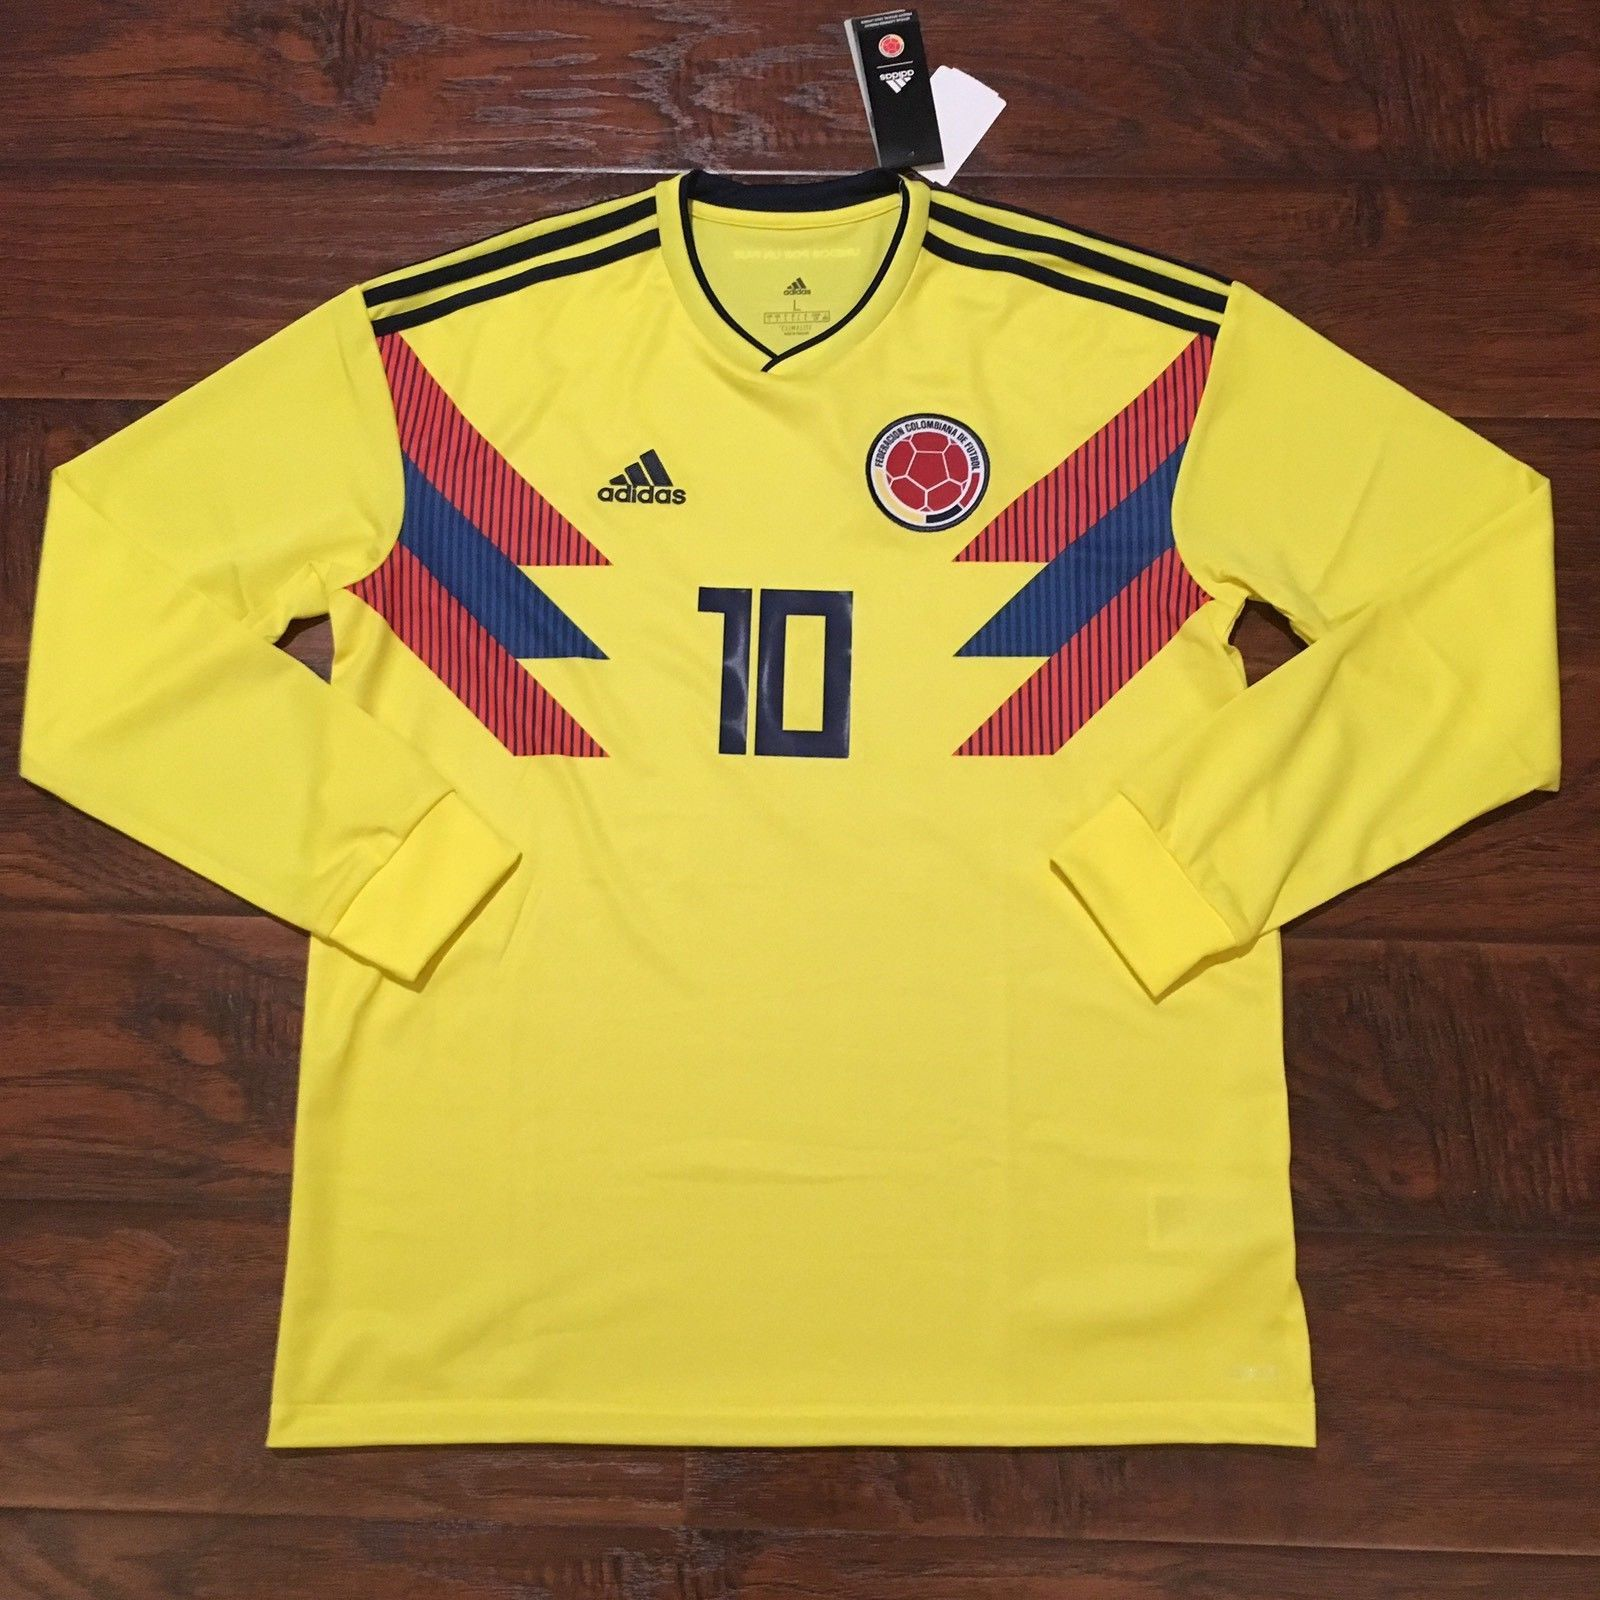 2018 Colombia Home Jersey  10 JAMES Large ADIDAS World Cup Soccer L S NEW 9ad4eee08